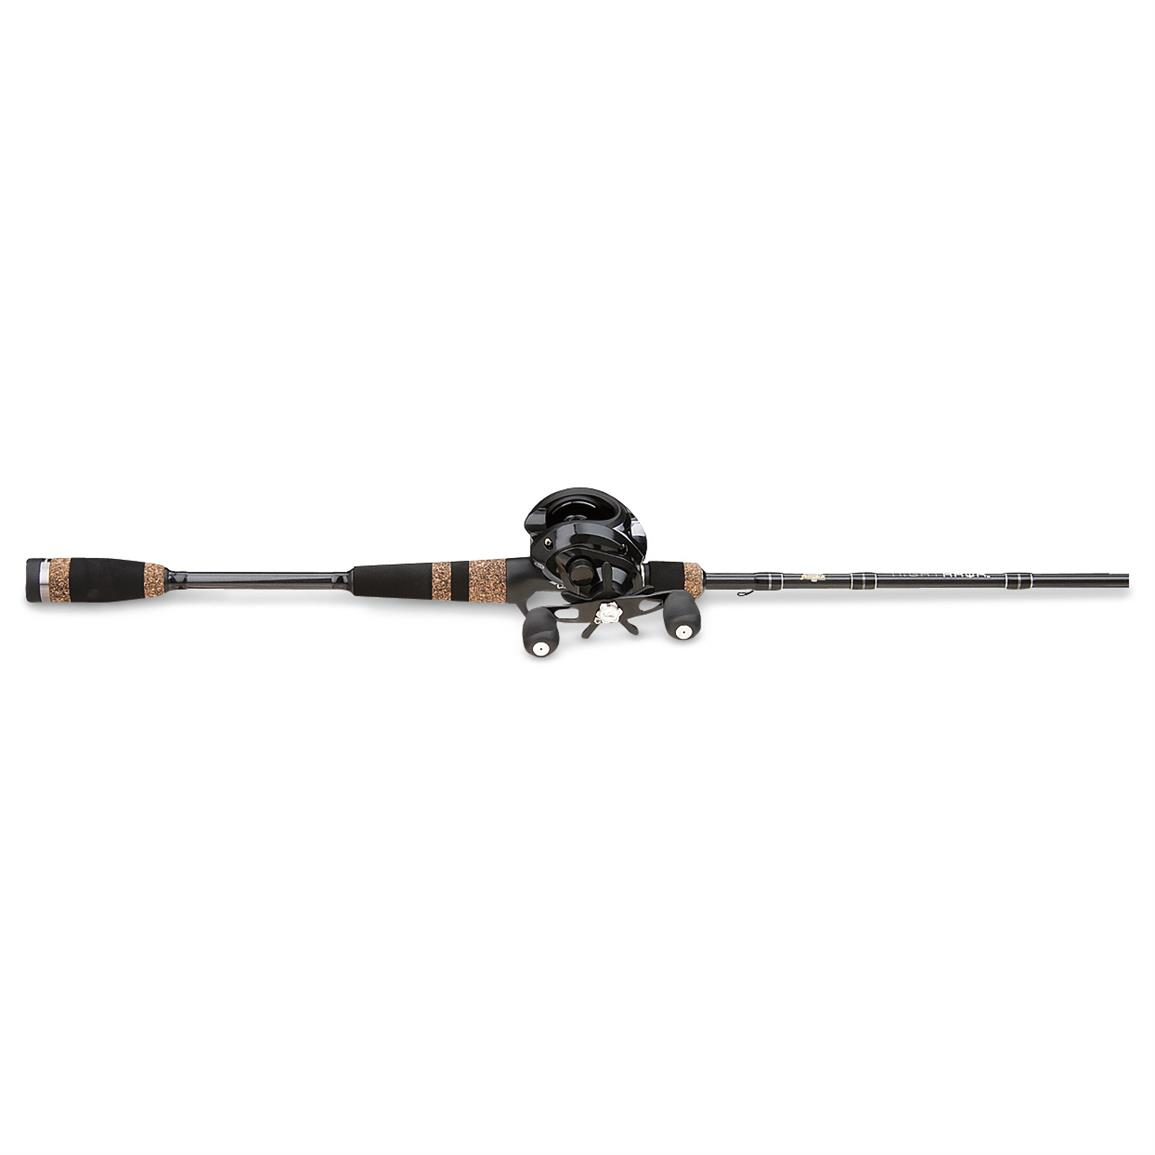 Fenwick Night Hawk LP / Pflueger 7 foot Baitcasting Combo